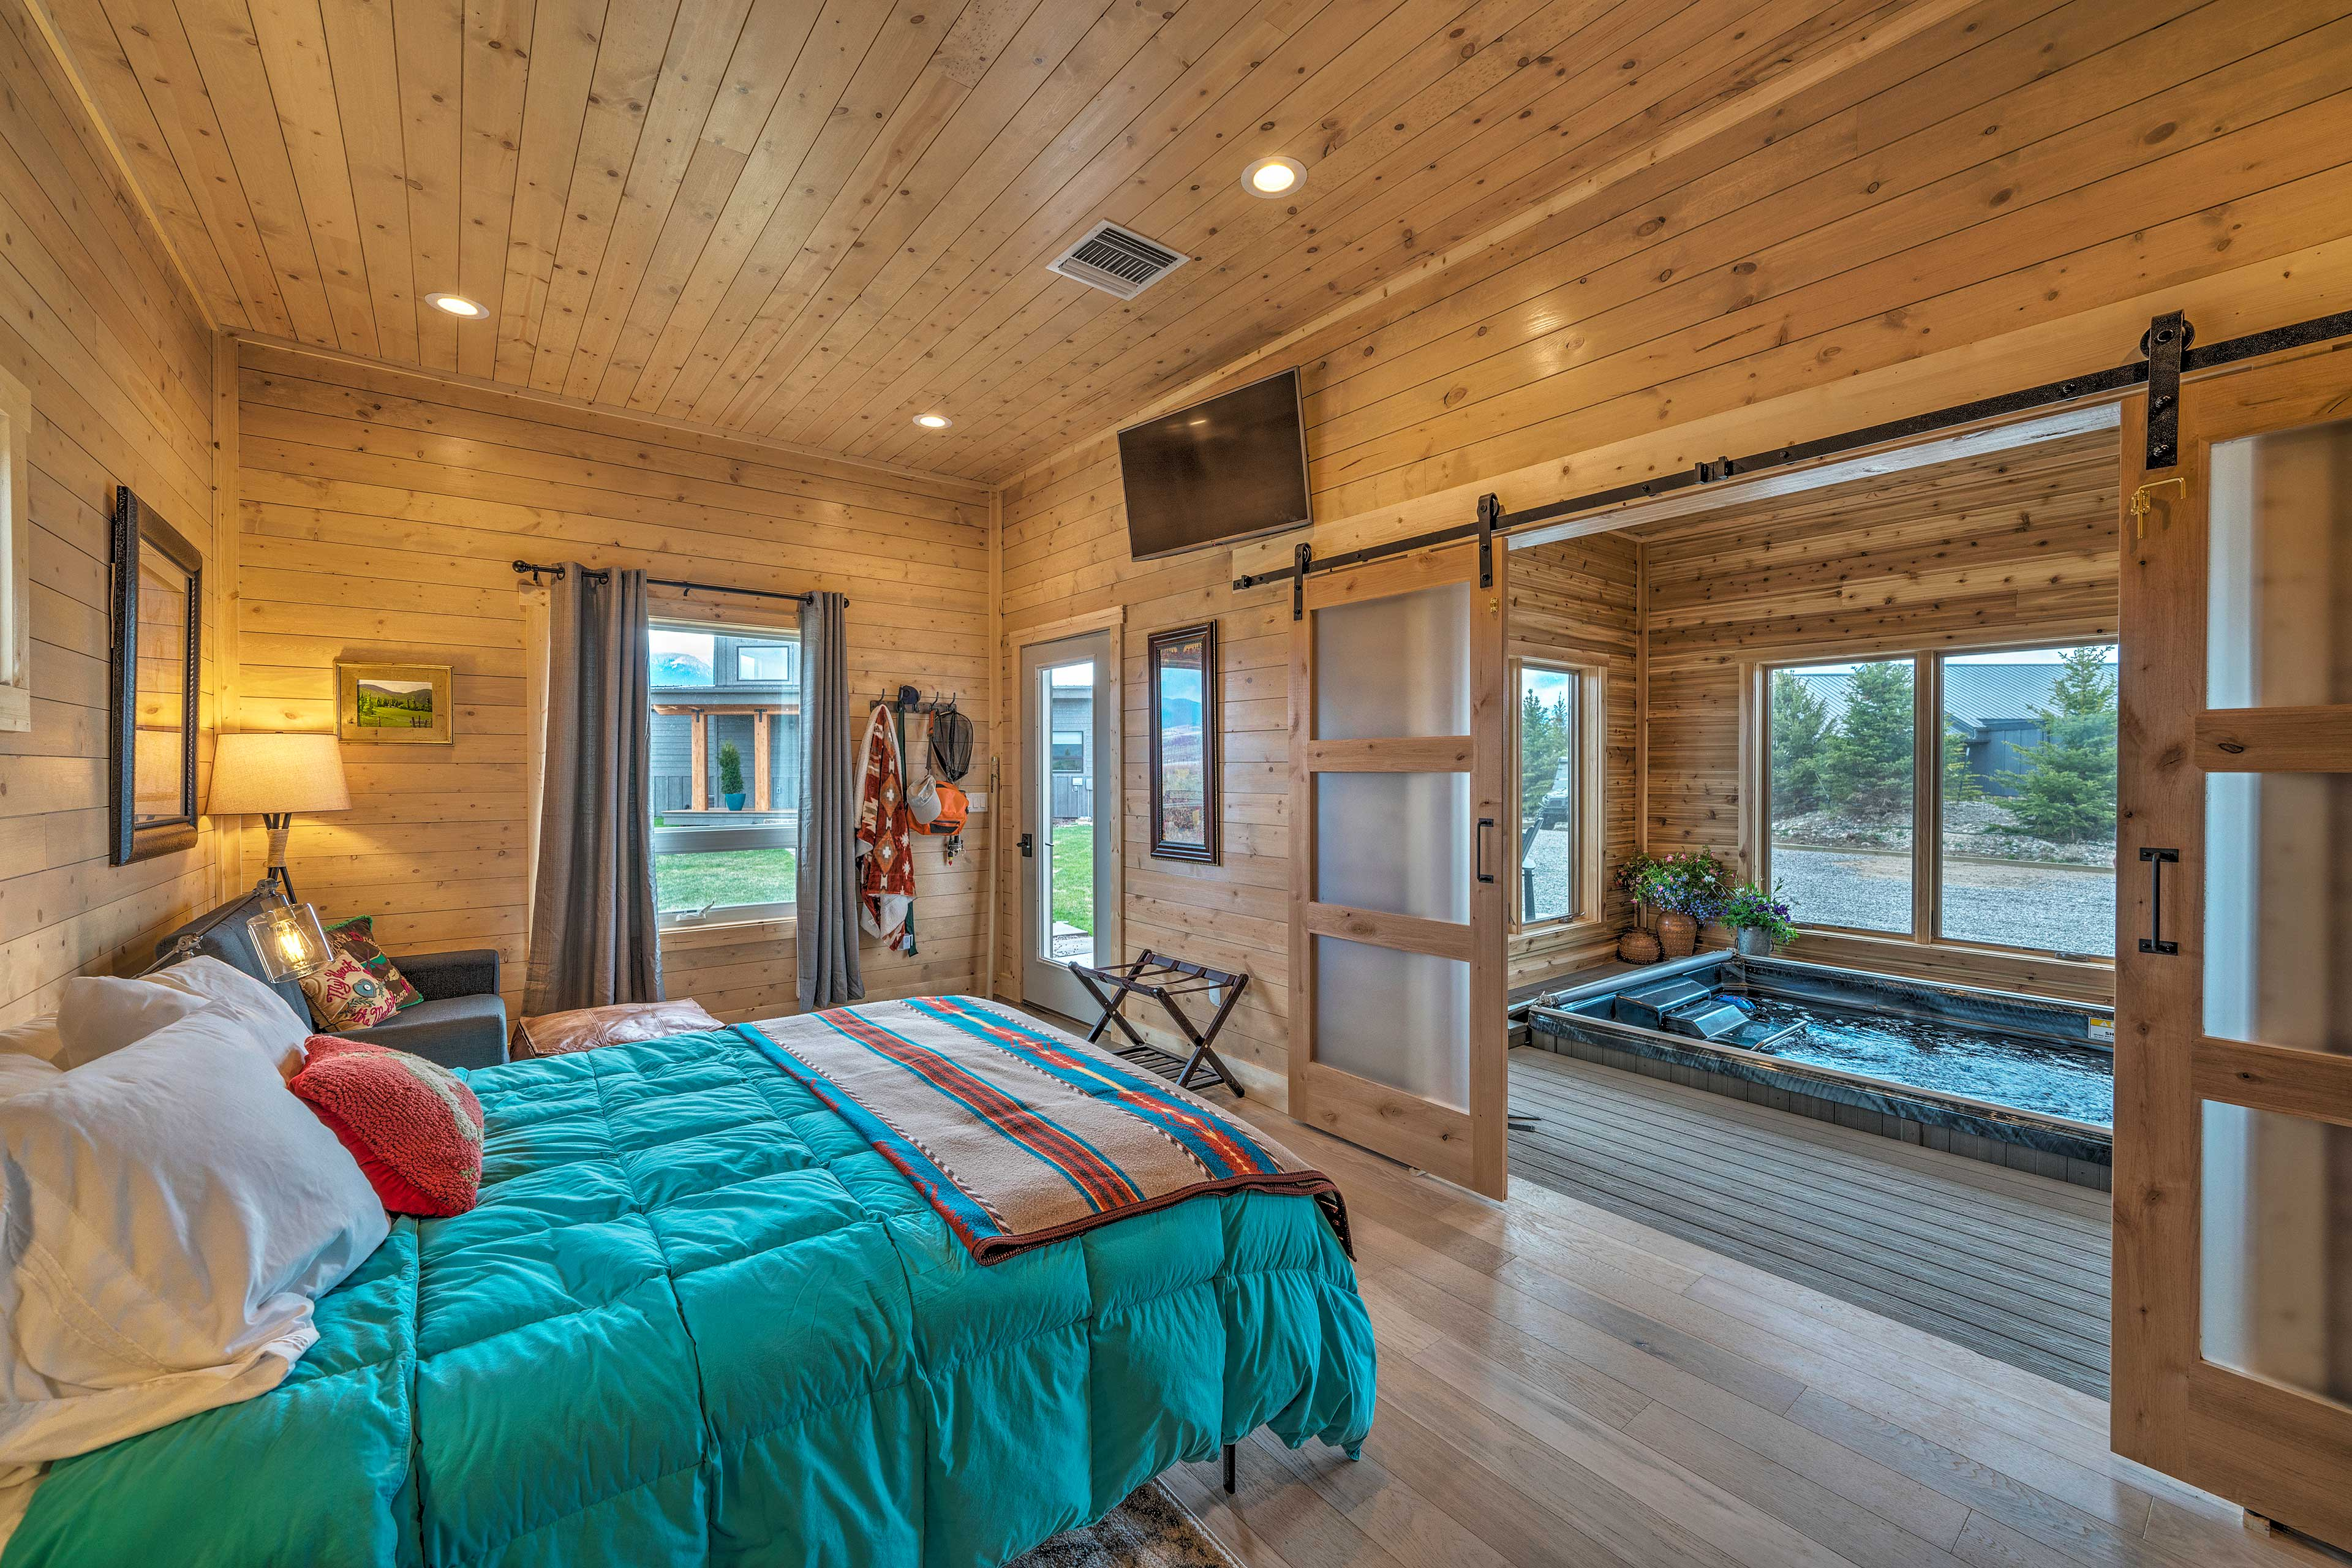 Sliding barn doors reveal access to the private indoor pool.